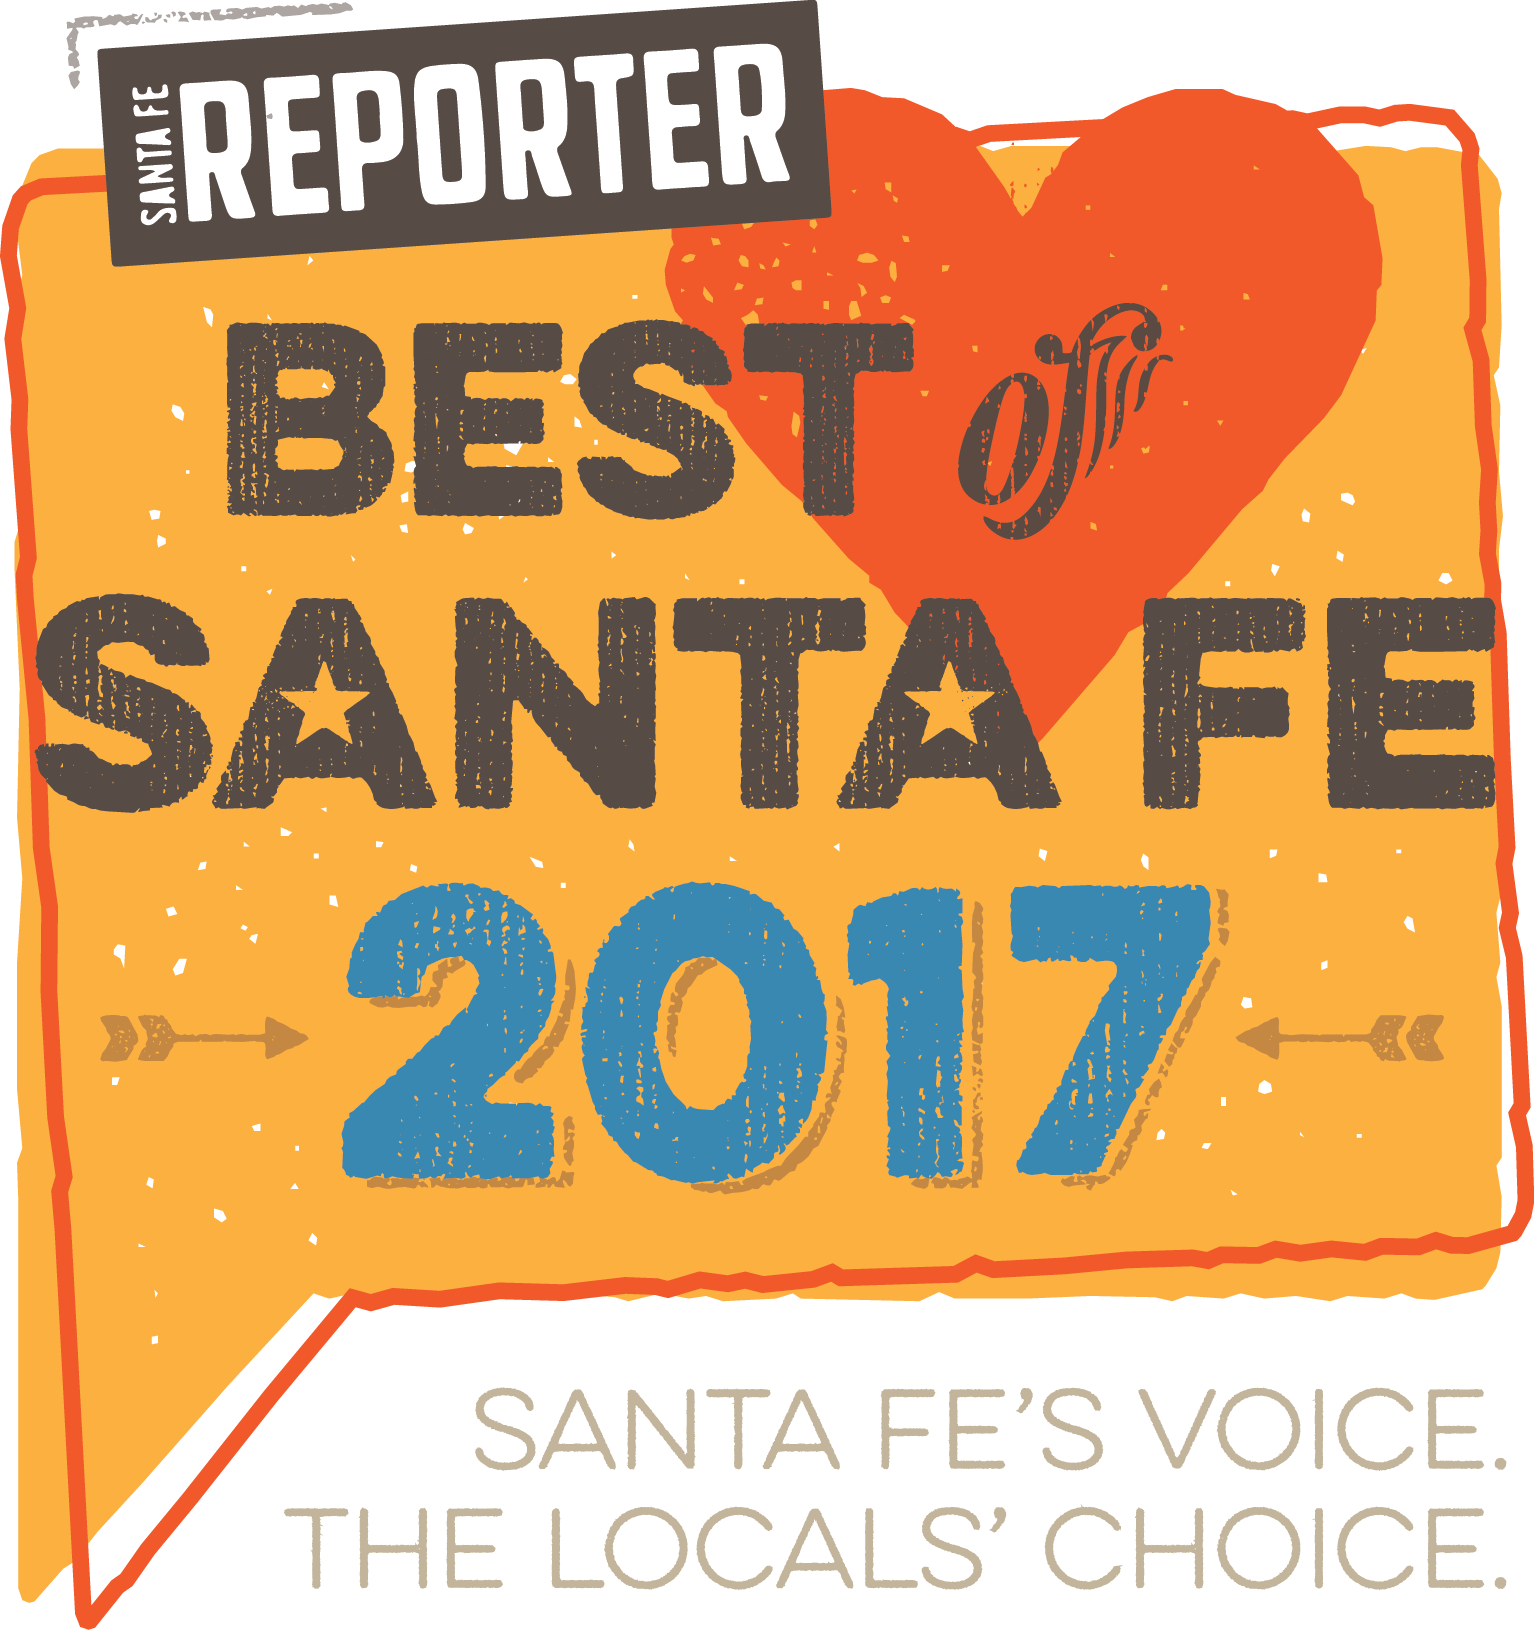 Thank You! - Thank you Santa Fe for being kind to nominate and vote me BEST CURATOR of Santa Fe! What a pleasure...Bobby Beals